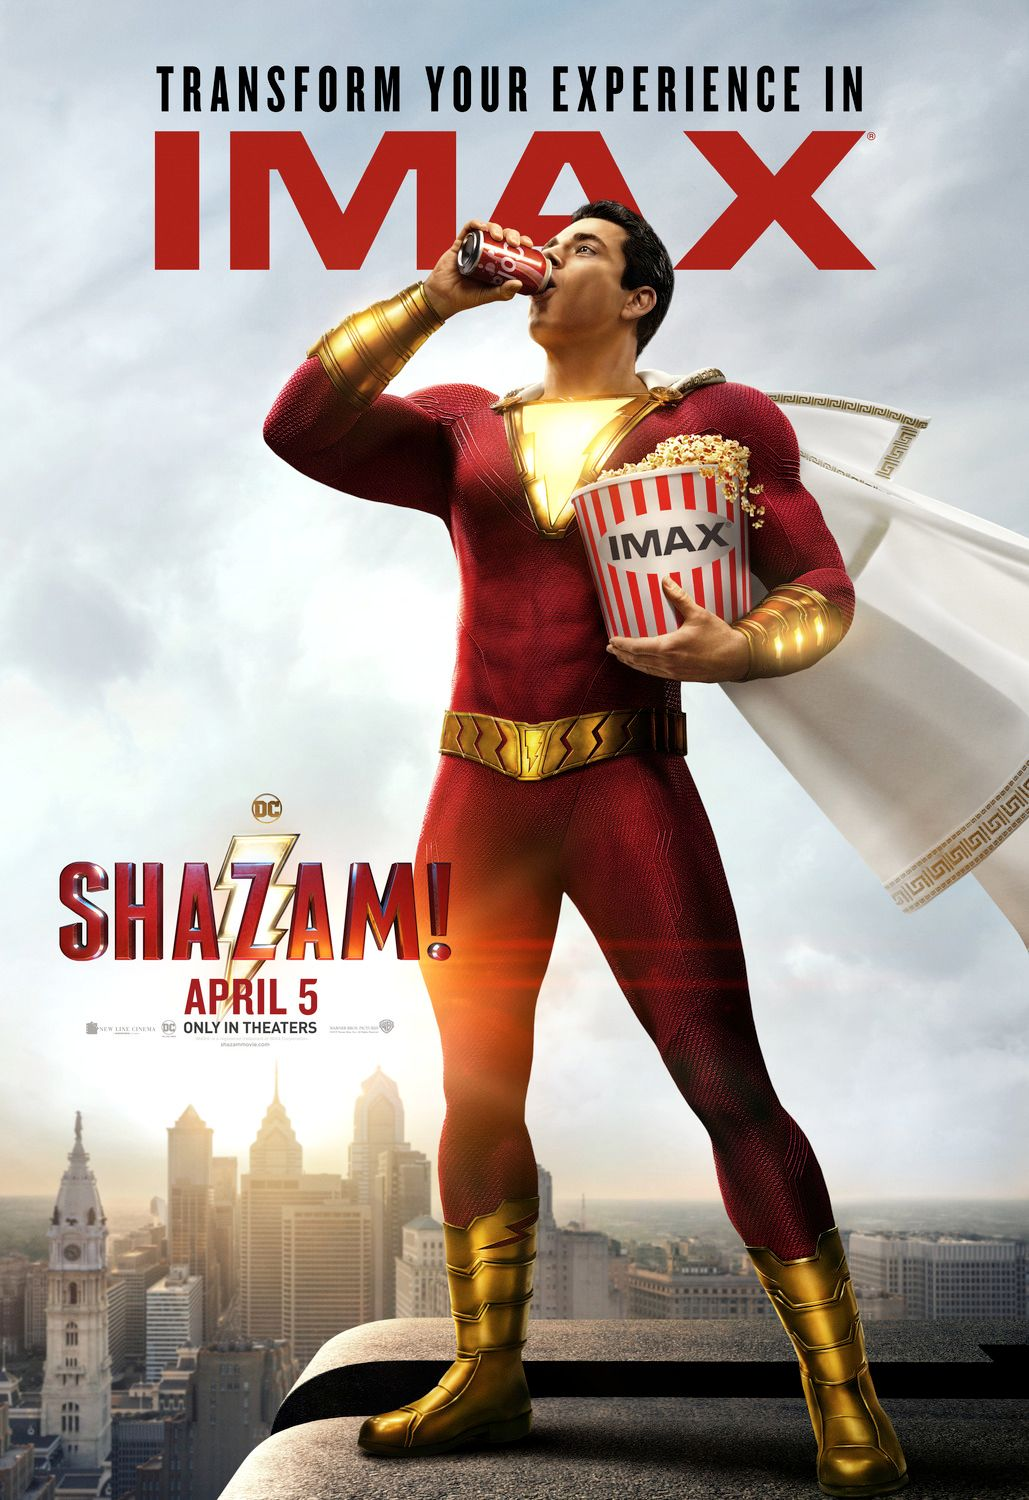 Movie Poster 2019: Zachary Levi On Shazam! And Why Comic Book Movies Are So